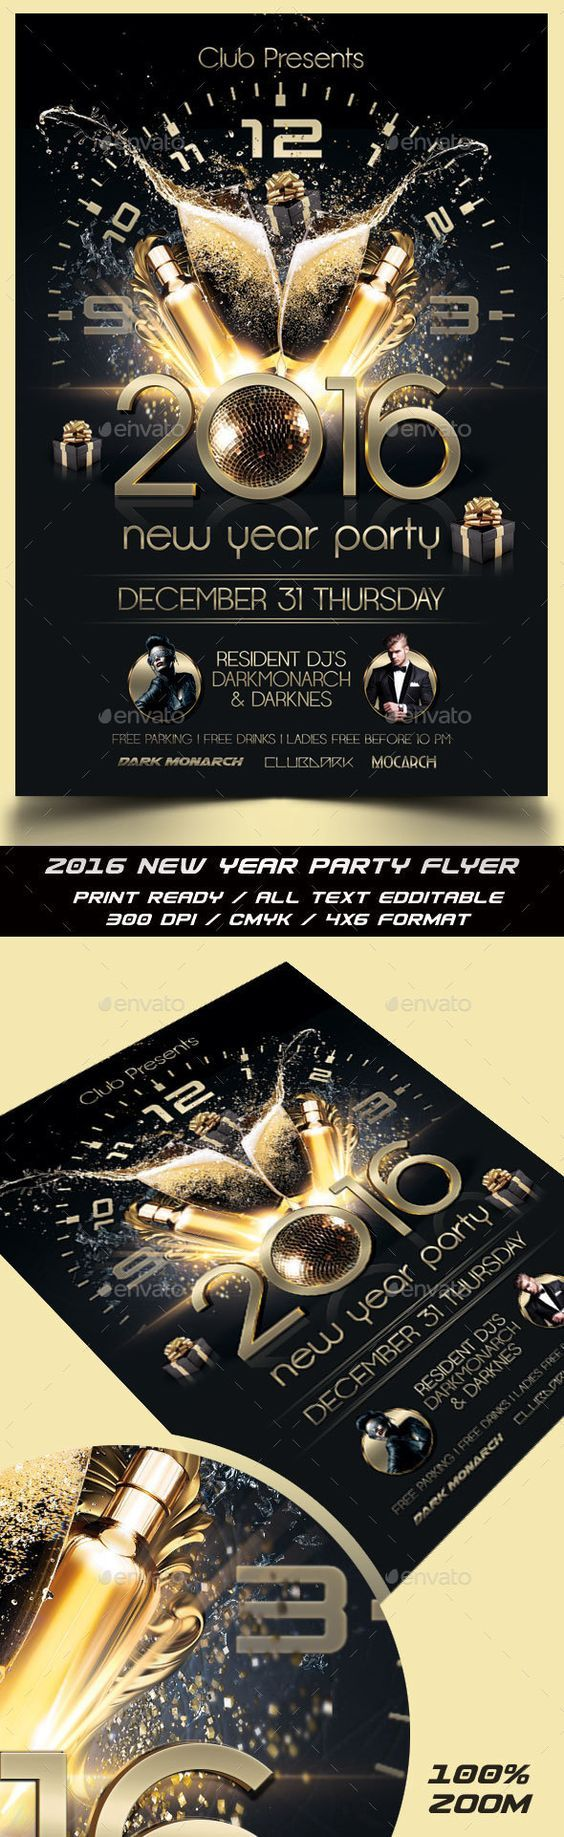 New Year Party Flyer Template PSD #design Download: http://graphicriver.net/item/new-year-party-flyer/13914666?ref=ksioks: